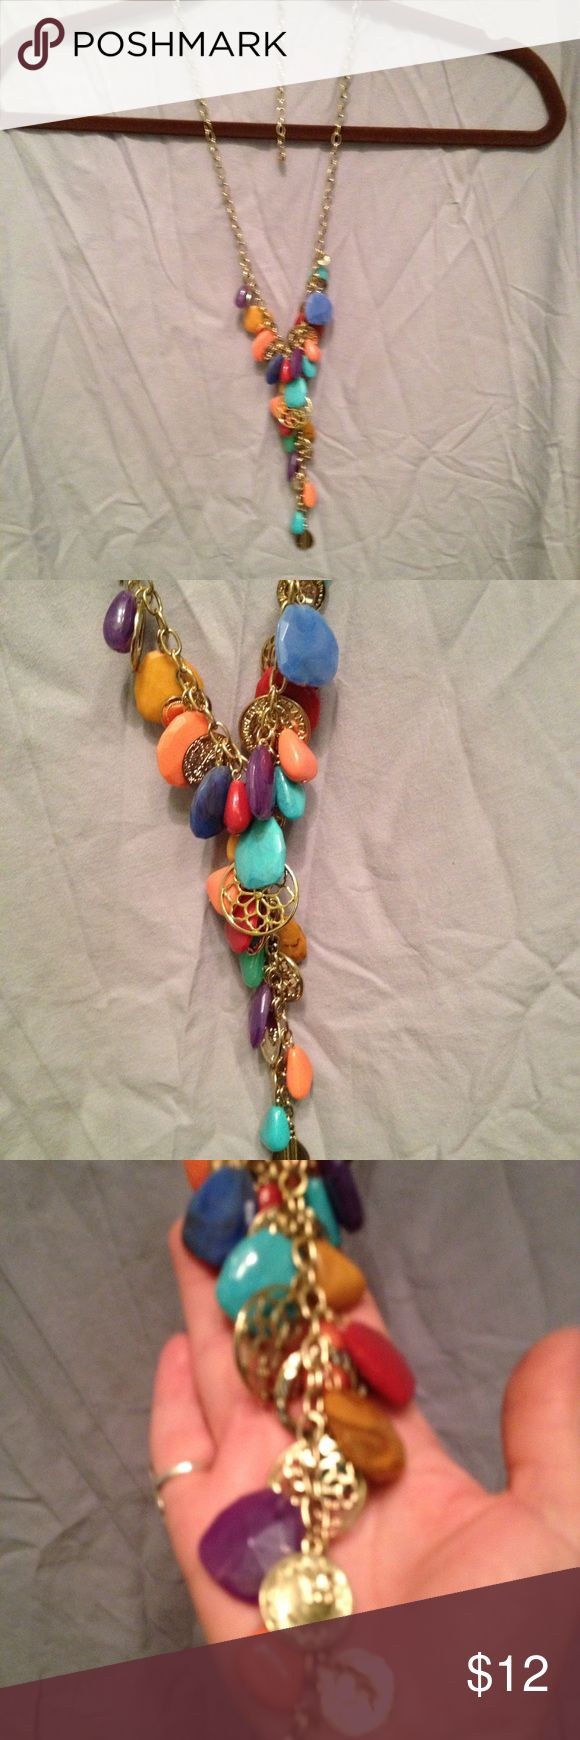 "RJ Graziano Colorful Long Necklace RJ  Graziano Goldtone necklace has colorful faux stones and goldtone charms. Length is 24"" with 4"" extension. Original Graziano  hang tag. Kept in jewelry box, Excellent condition. RJ Graziano Jewelry Necklaces"